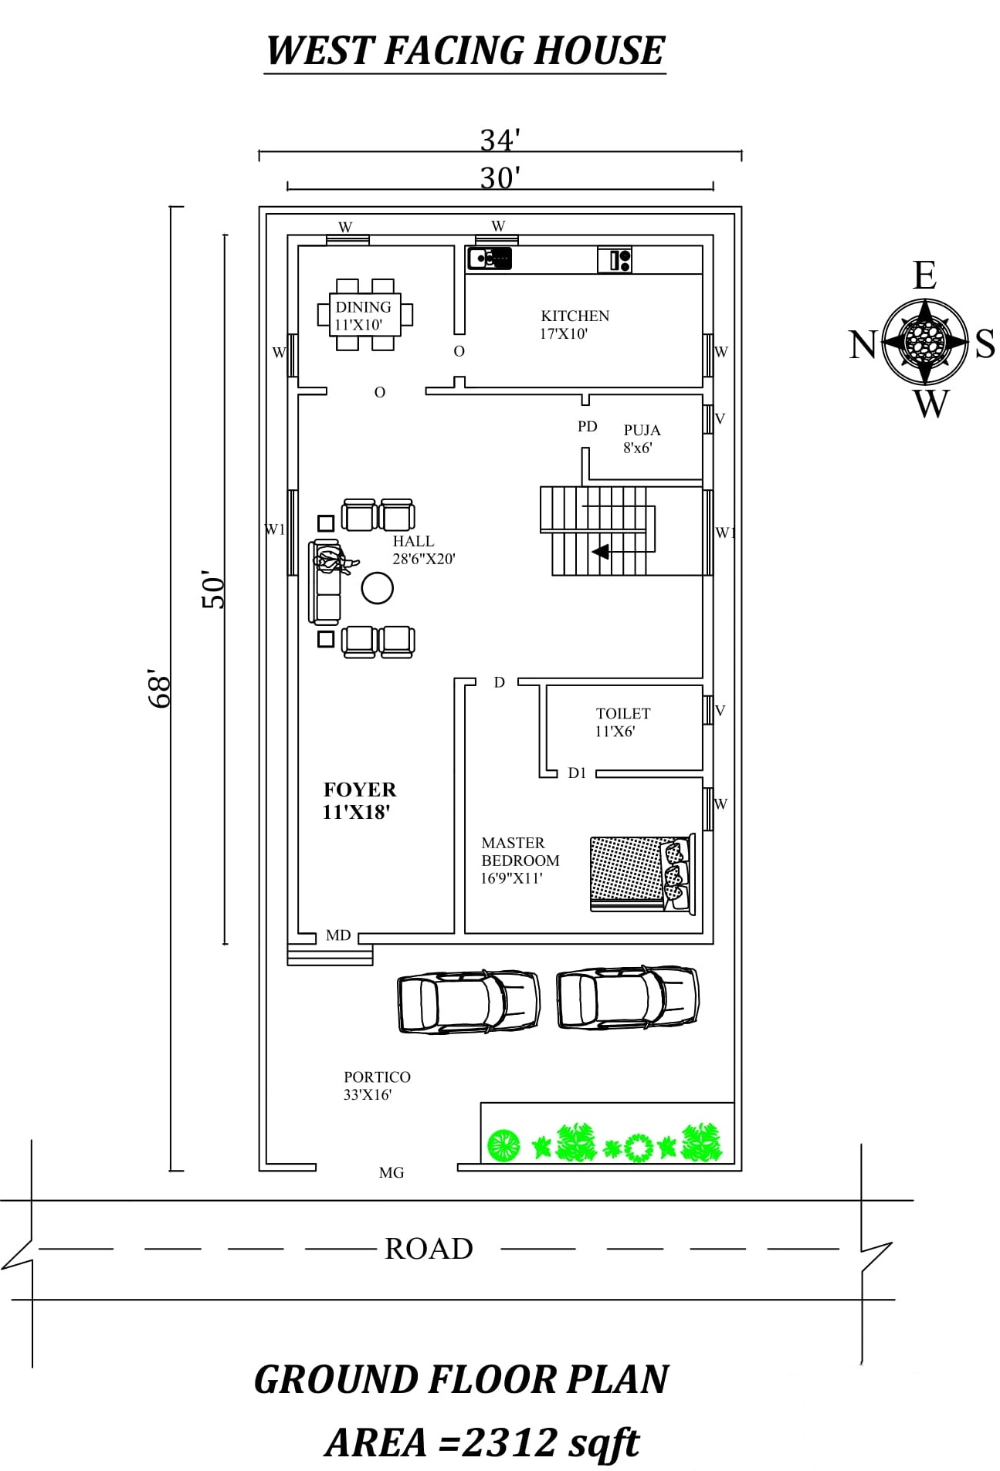 30 X50 Single Bhk West Facing House Plan As Per Vastu Shastra Autocad Dwg And Pdf File Details West Facing House House Plans How To Plan